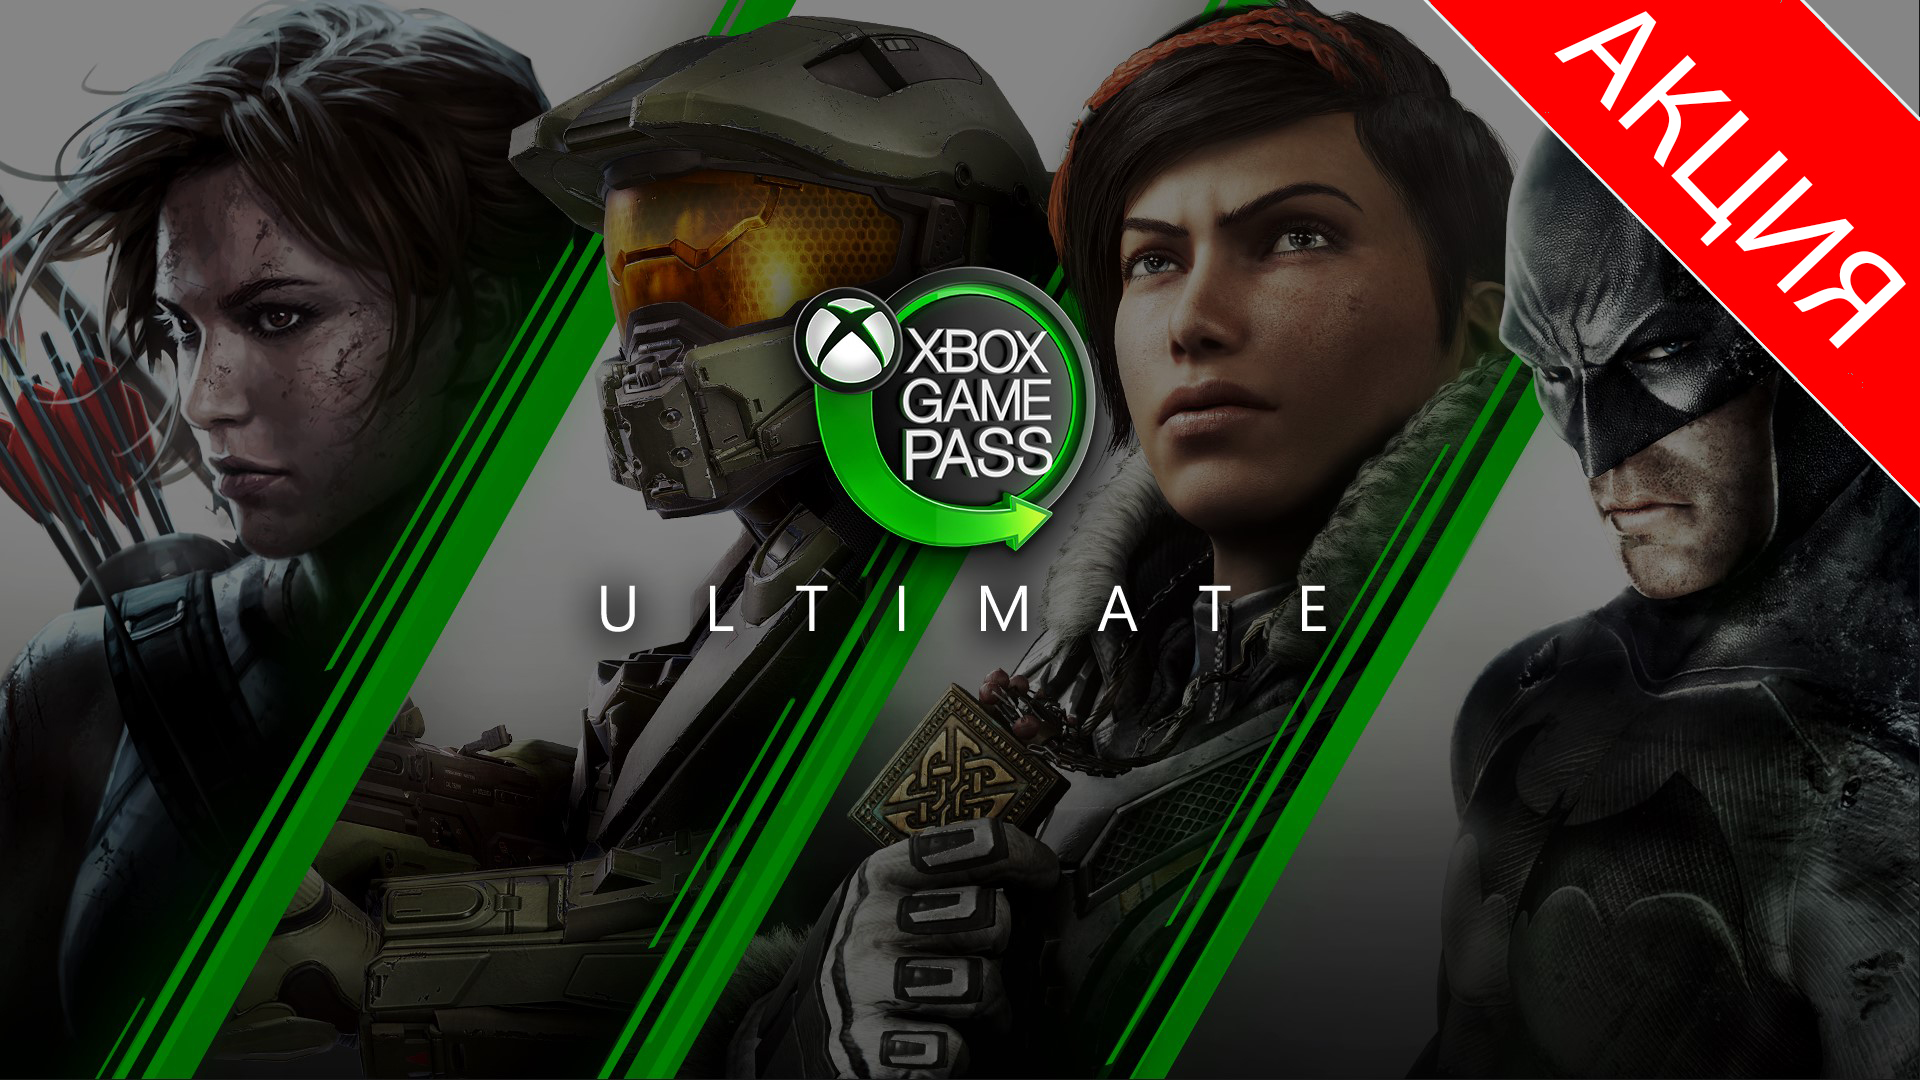 [Xbox Game Pass Ultimate] 14 days [Region free]